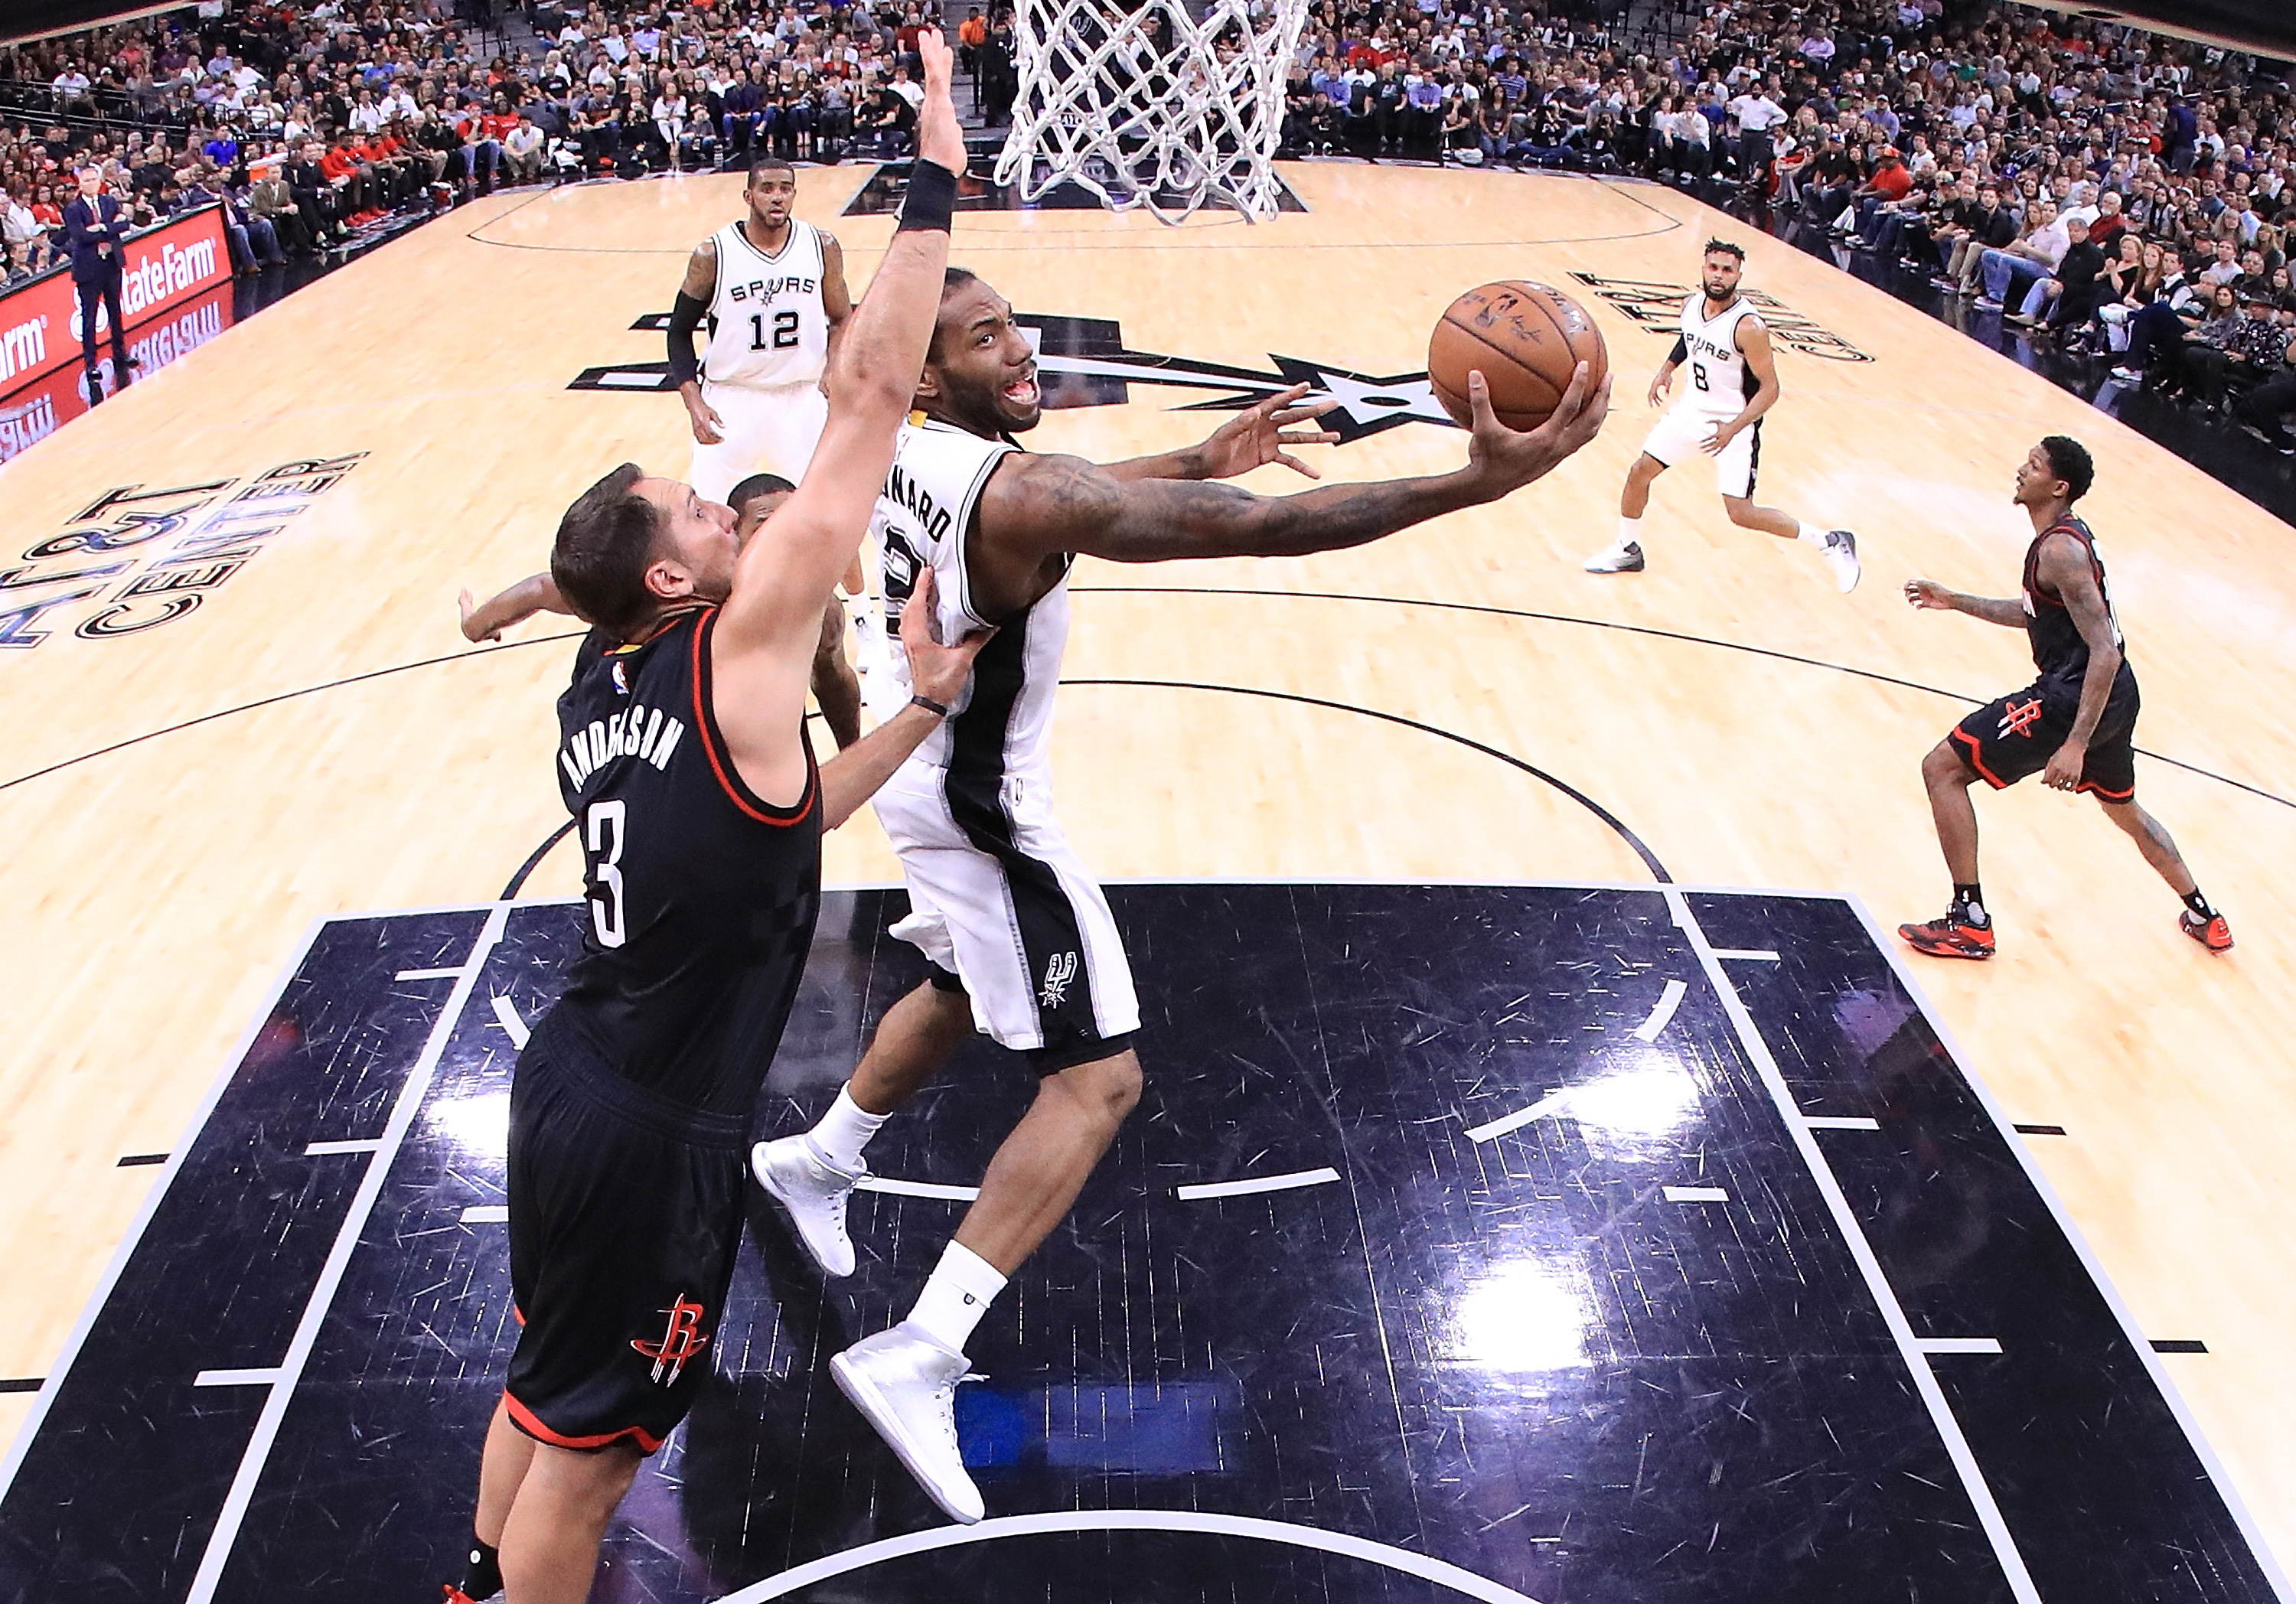 Kawhi Leonard of the  Spurs takes a shot against Ryan Anderson of the Rockets during Game Five of their series Tuesday. (Getty Images)